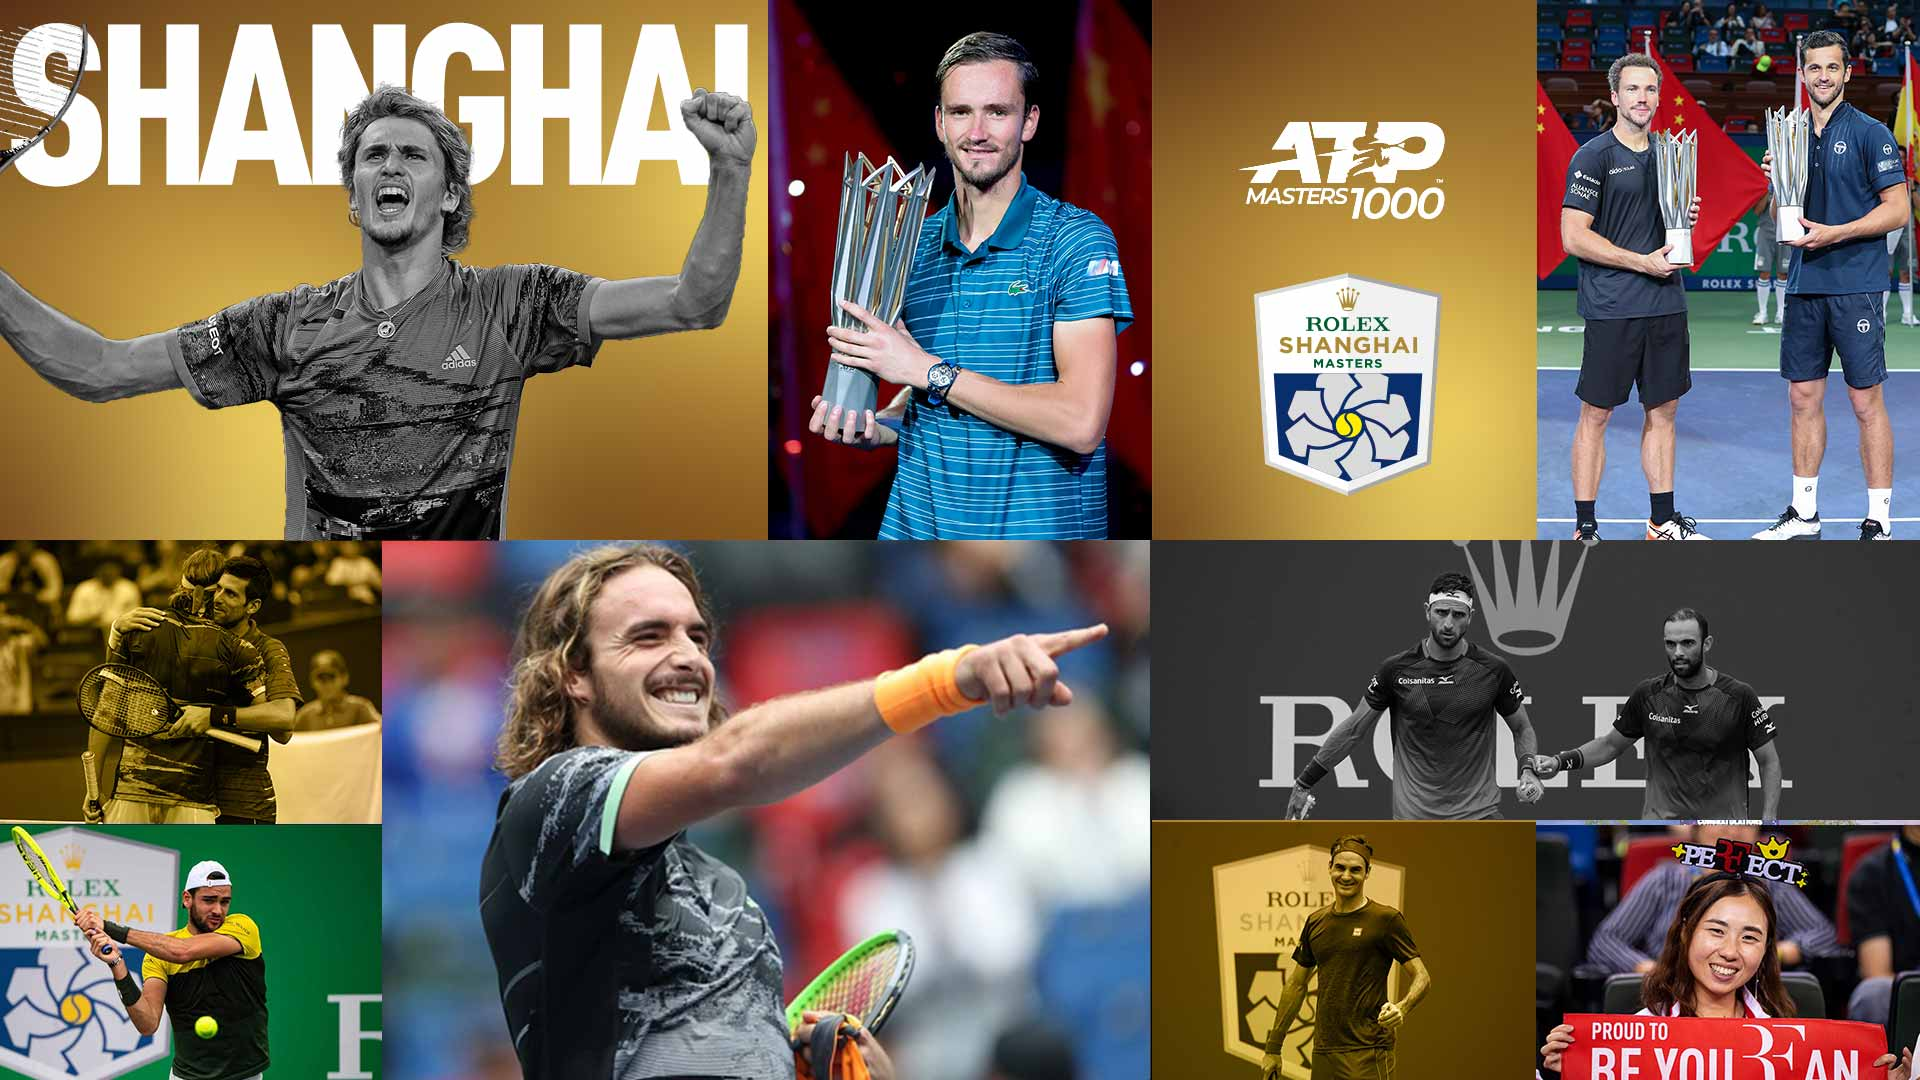 A Look Back At The 2019 Rolex Shanghai Masters | ATP Tour